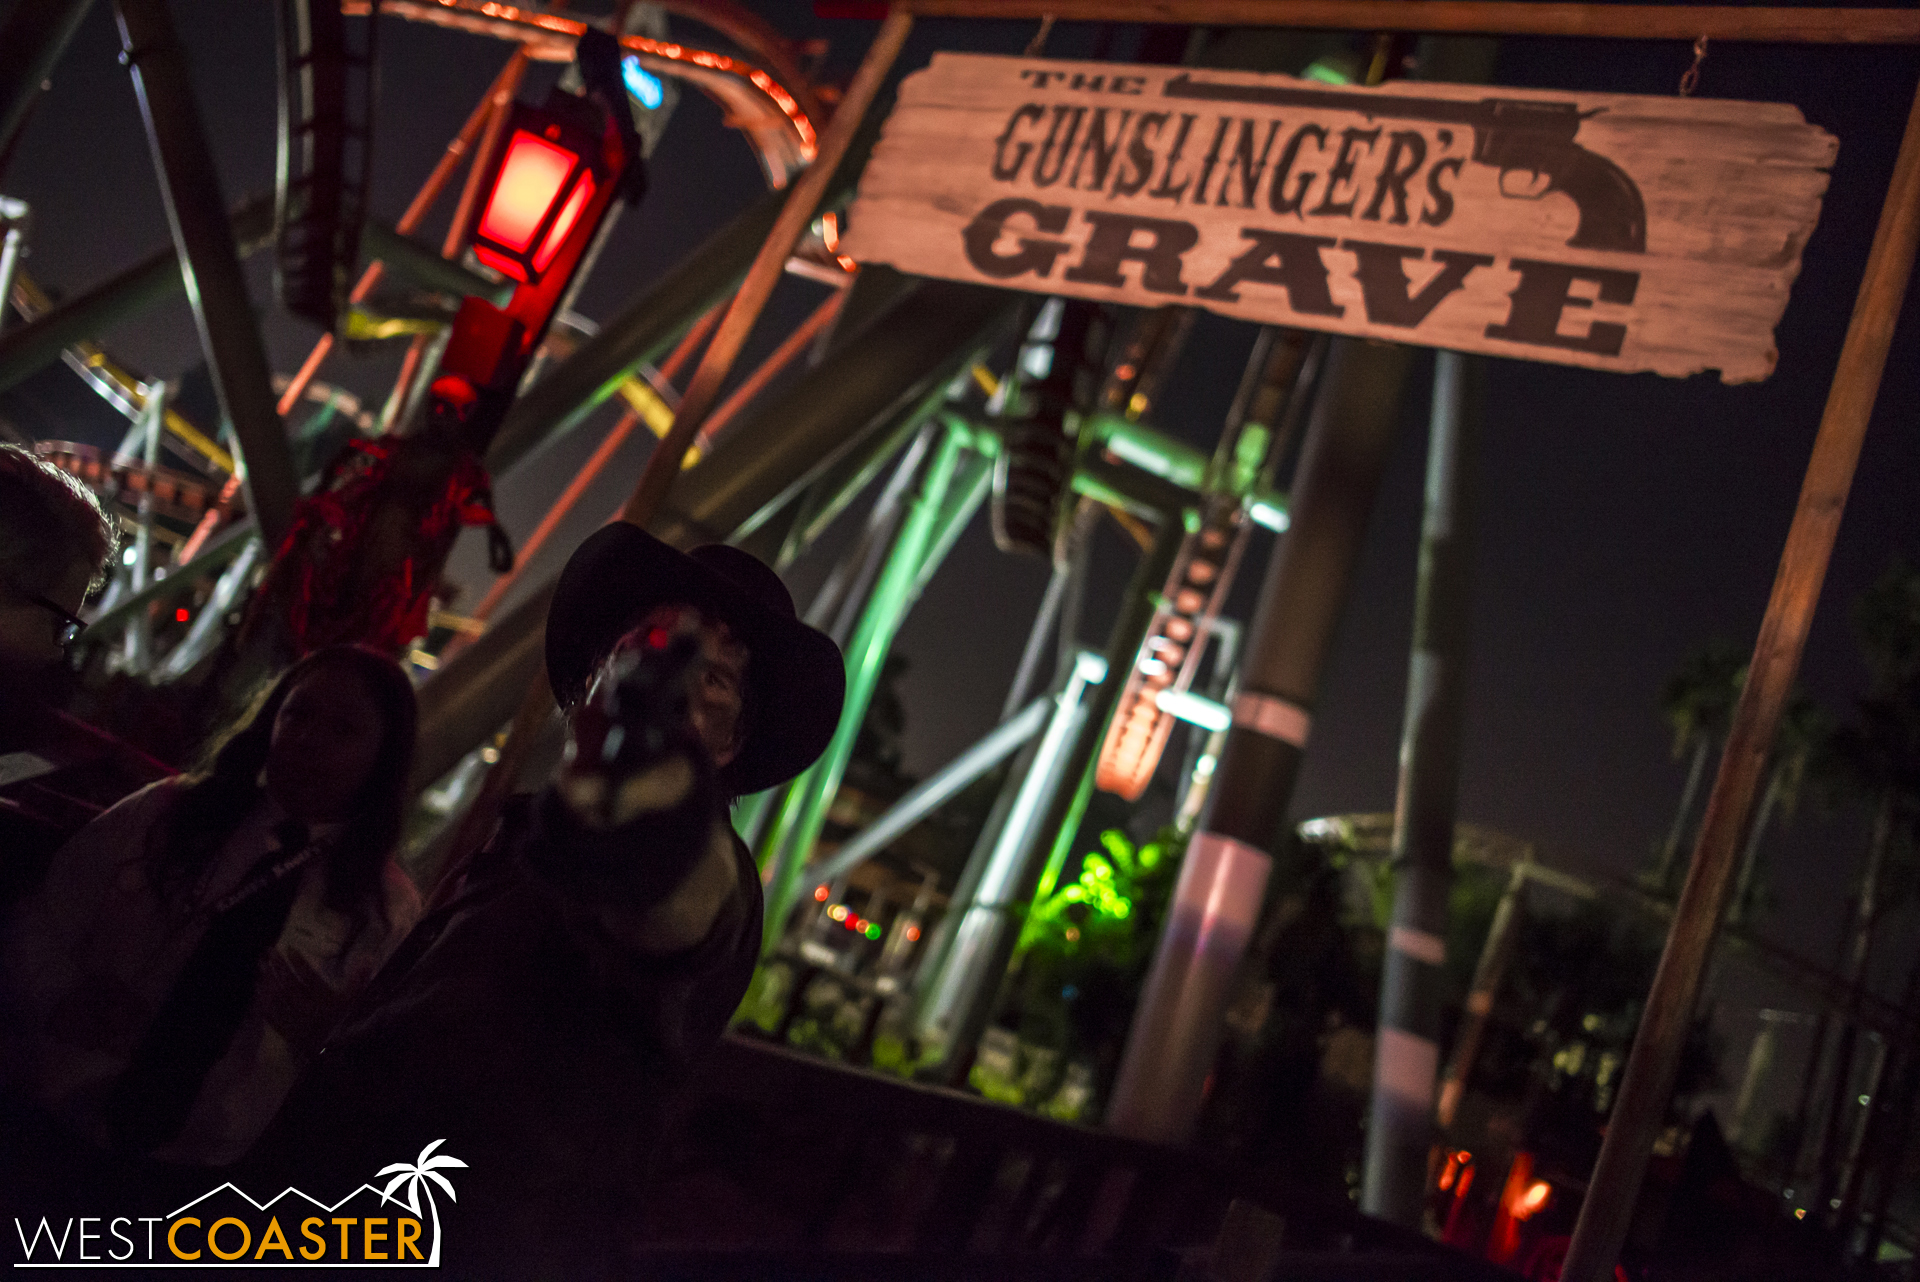 Guests entering this maze may come face to face with The Gunslinger himself.